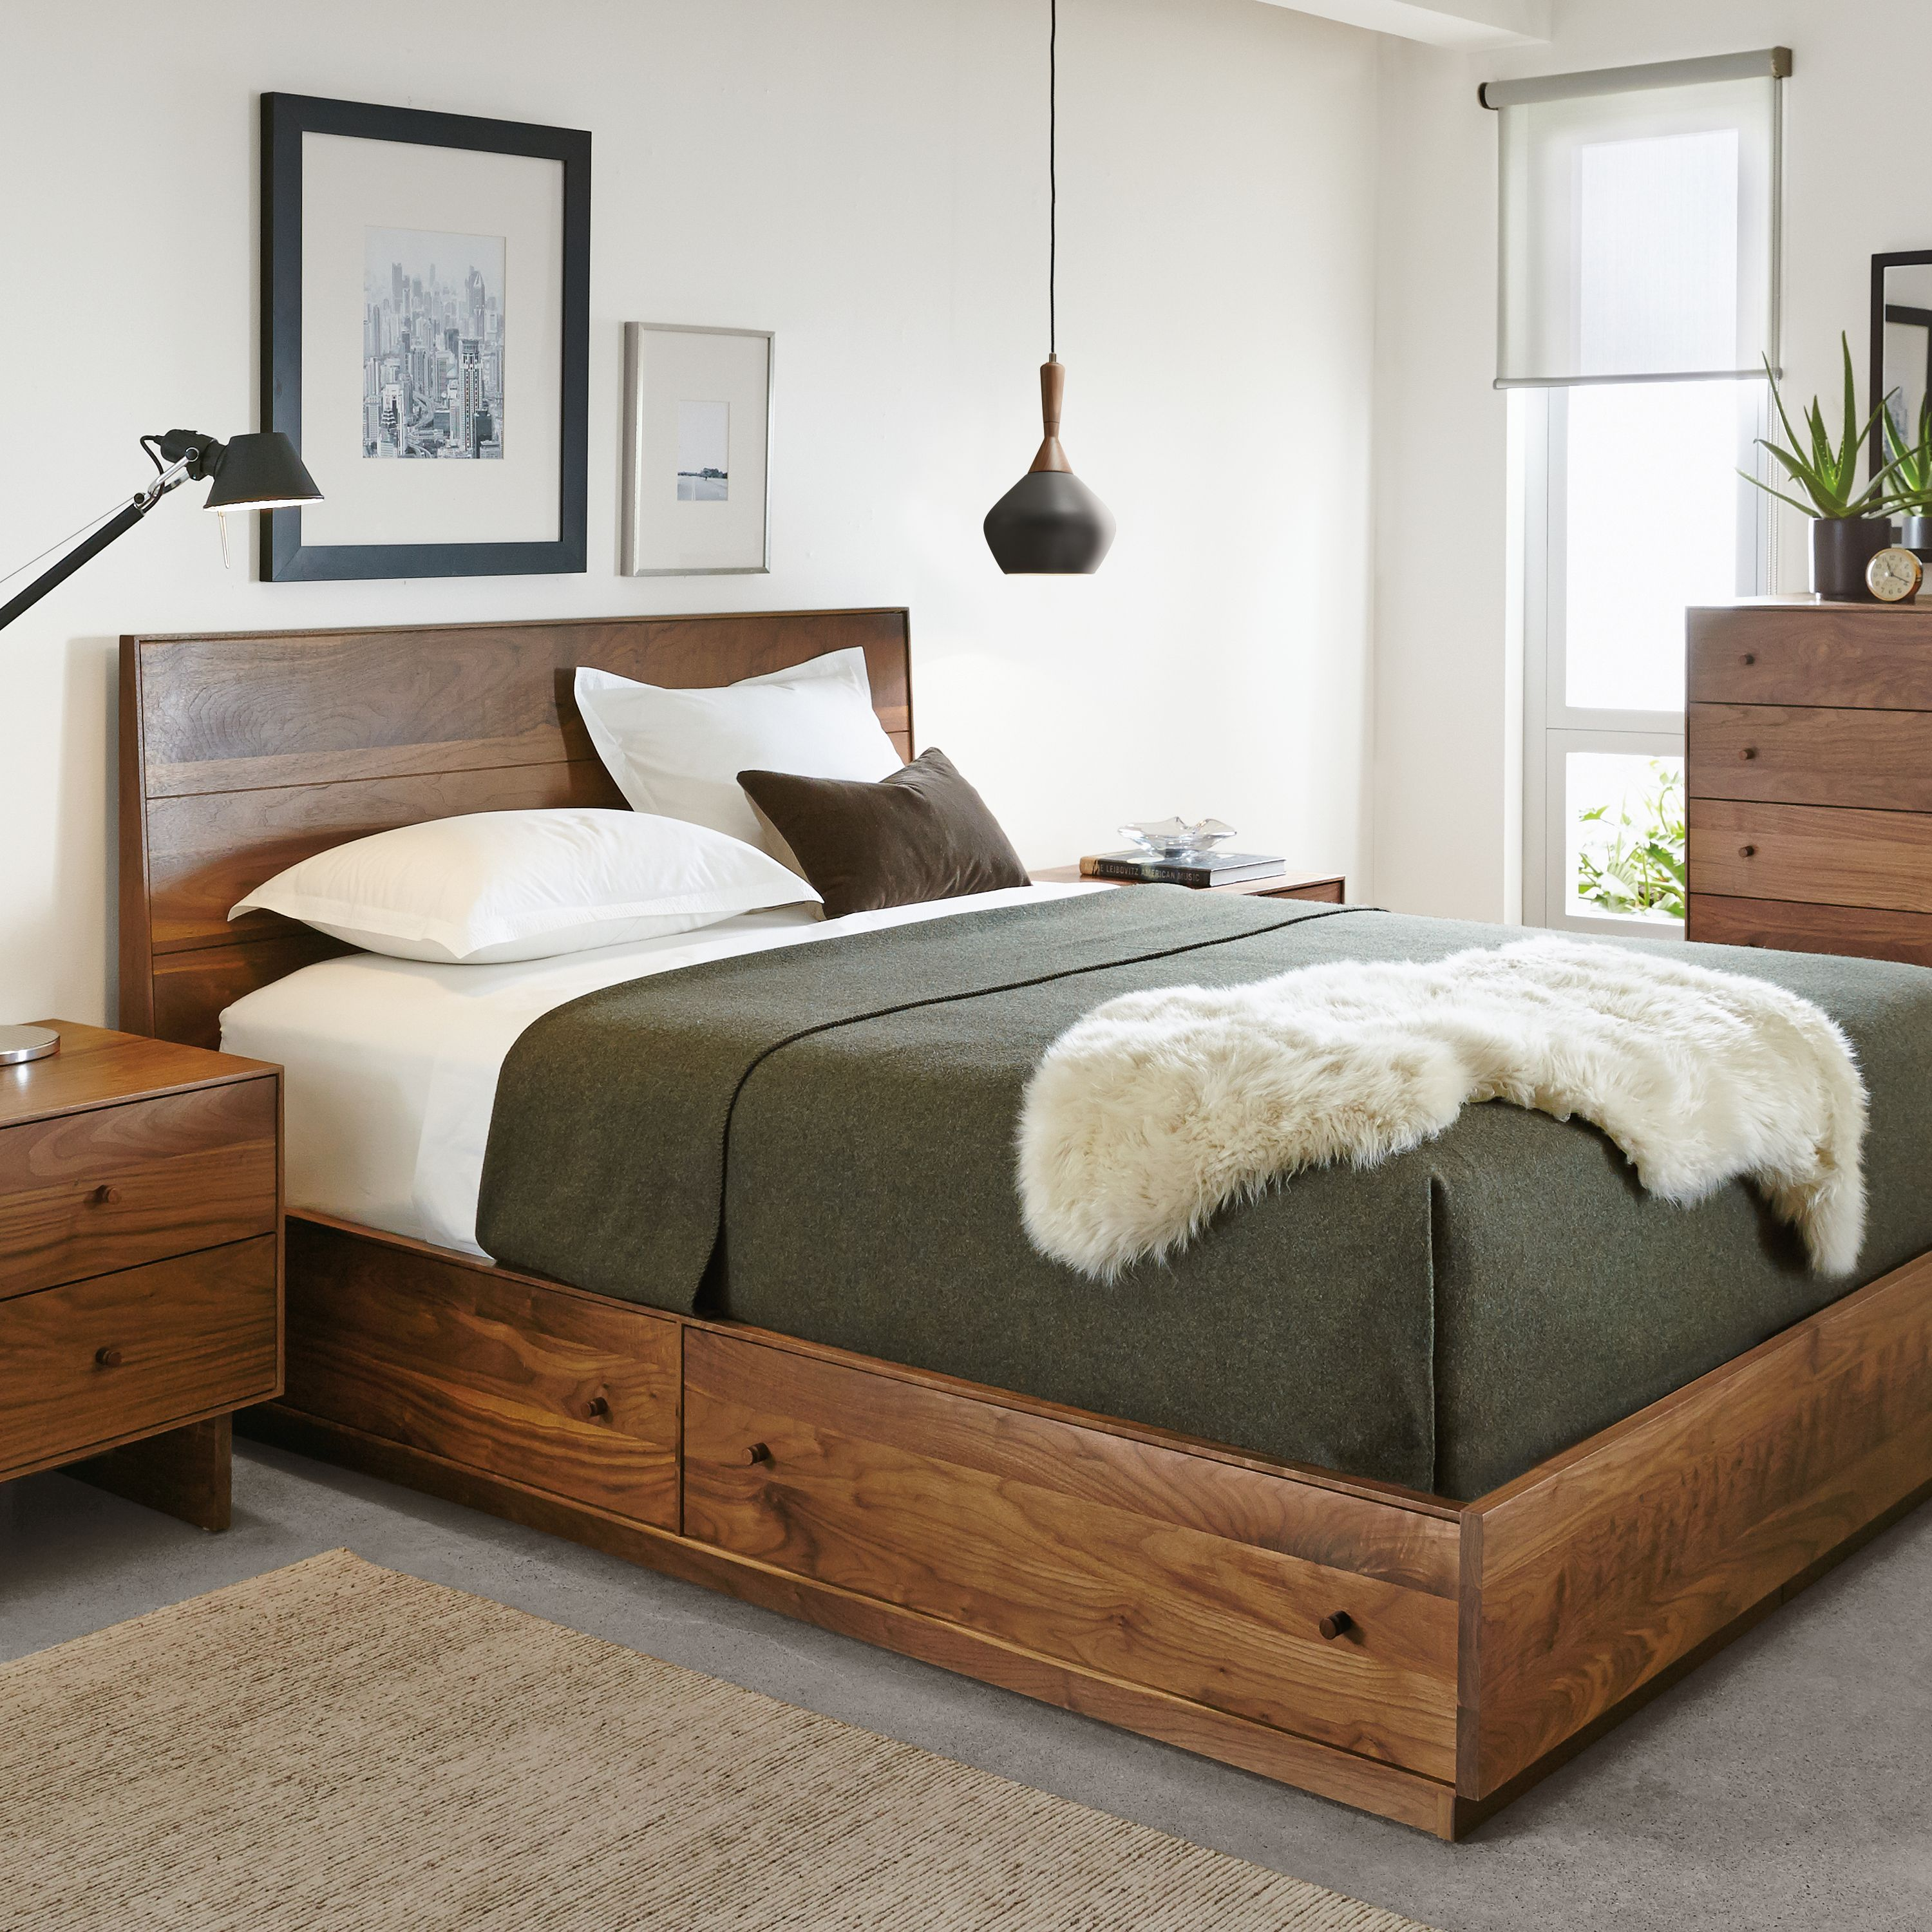 Hudson Bed With Storage Drawers Modern Contemporary Beds Modern Bedroom Furniture Room Board Modern Bedroom Furniture Bed Storage Drawers King Storage Bed